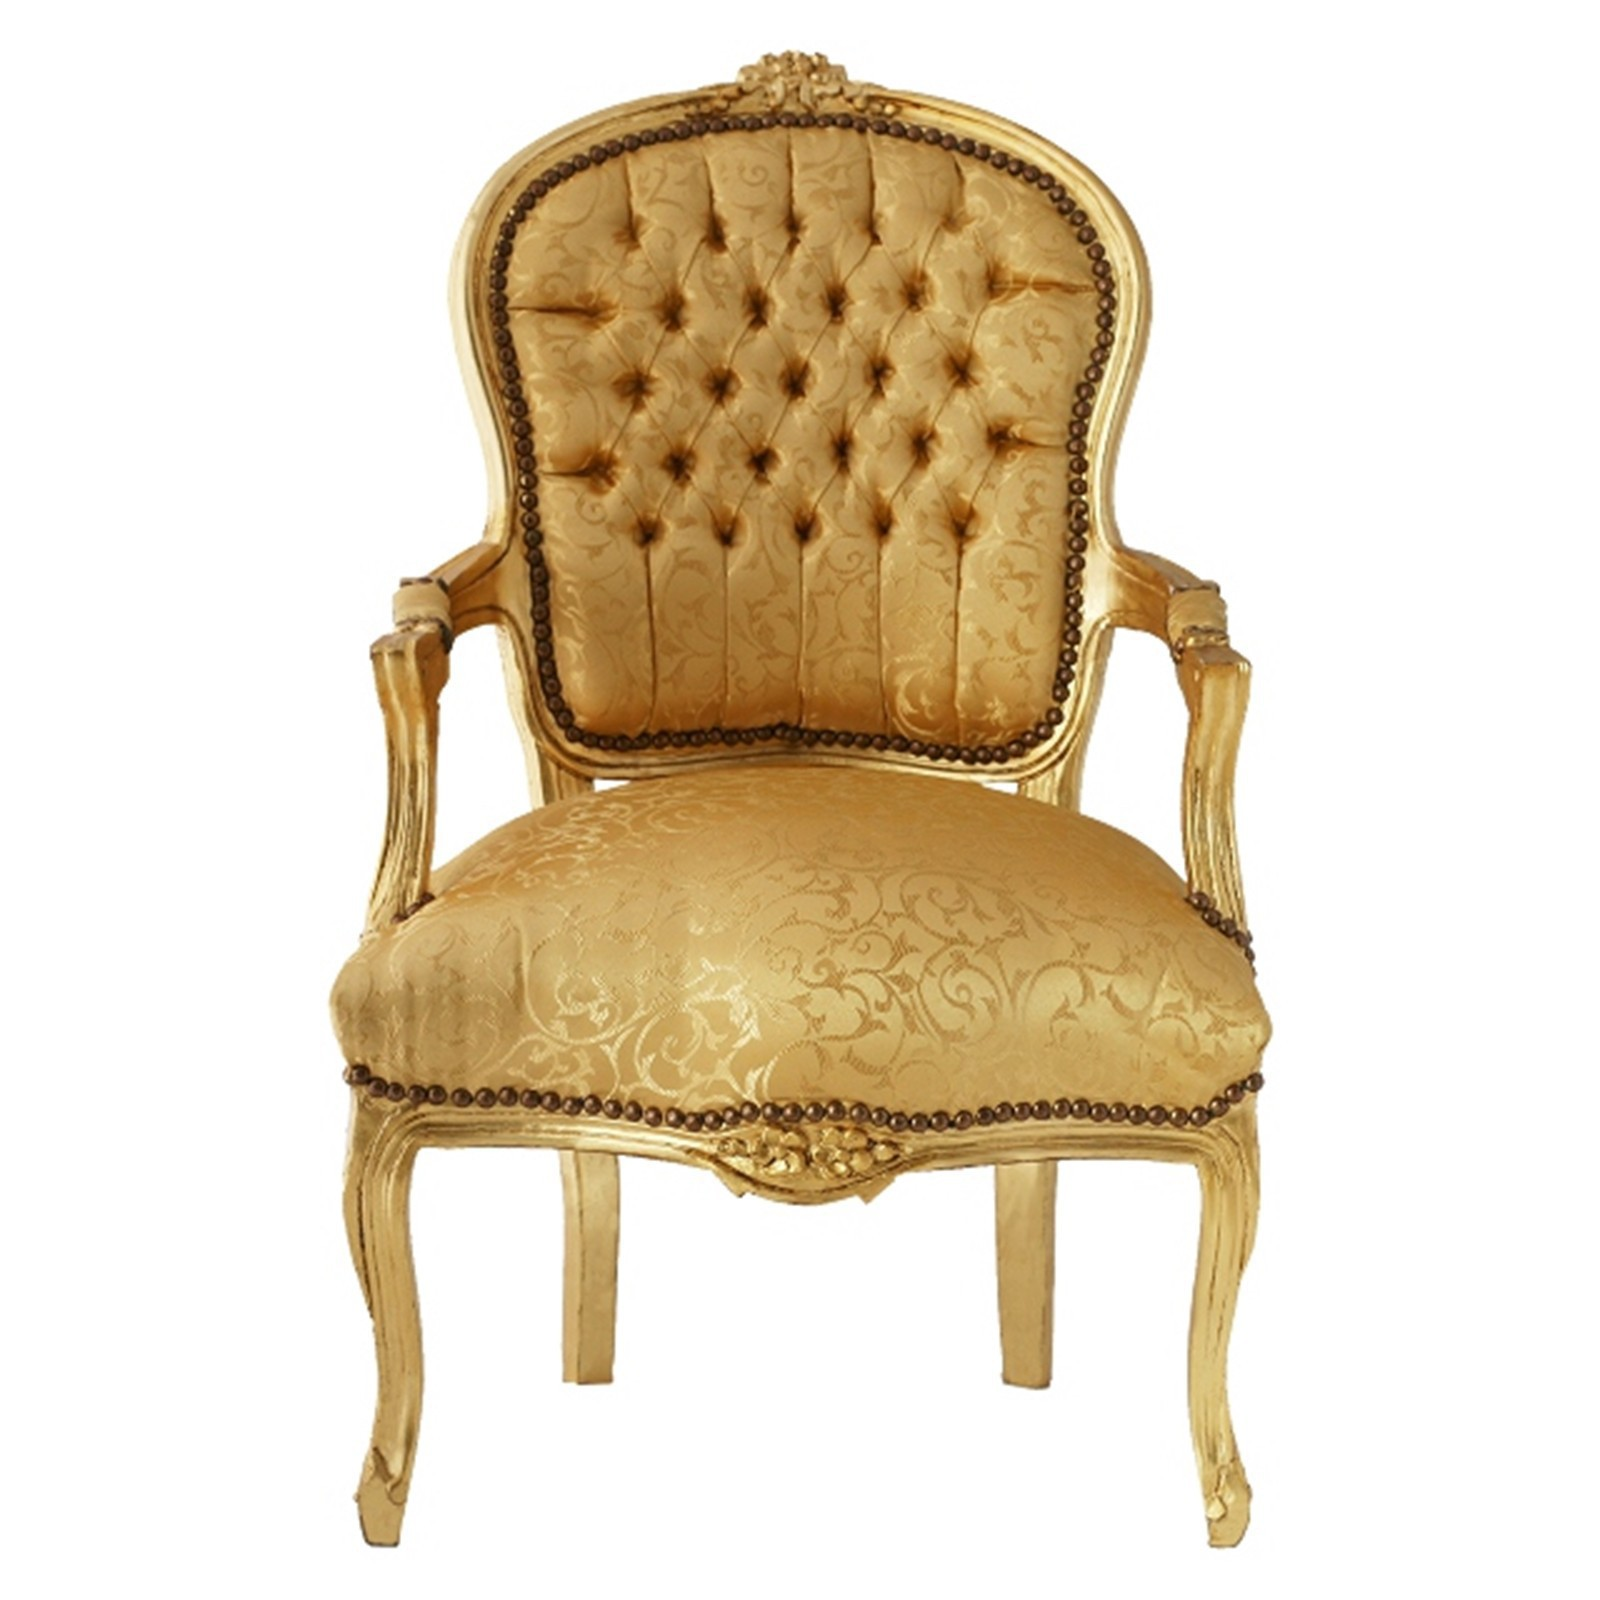 bedroom chair in gold with lovely floral pattern gold leafed wood frame bild